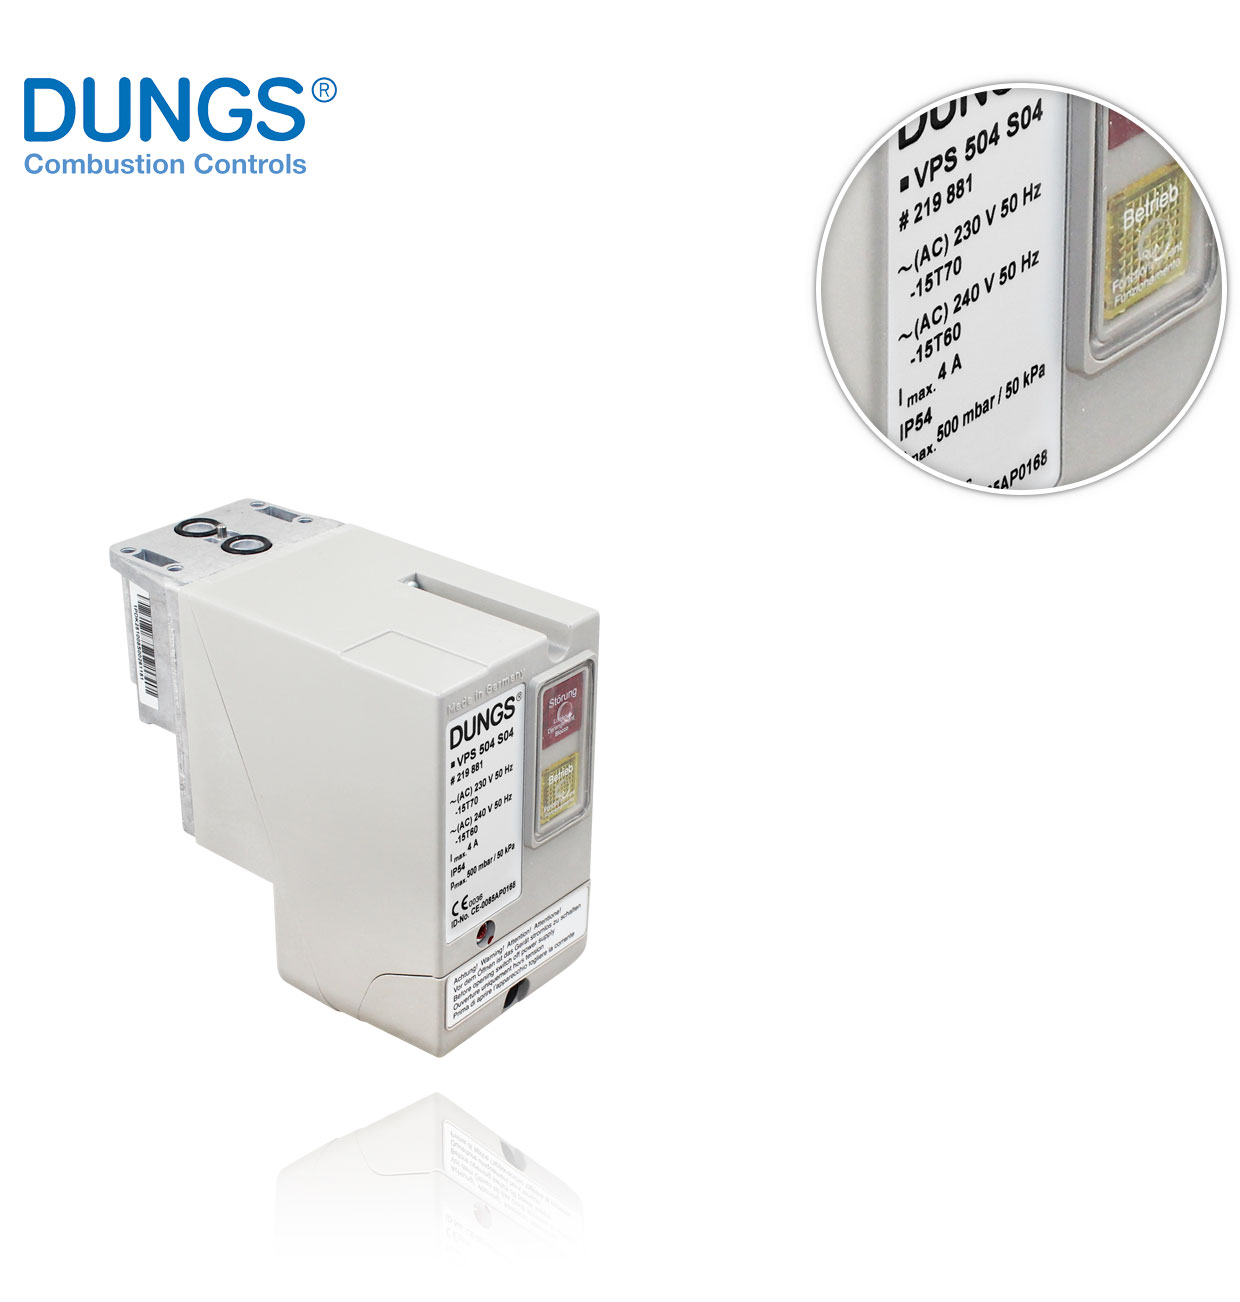 VPS 504 S04 IP54 230V 50Hz DUNGS LEAK CONTROL